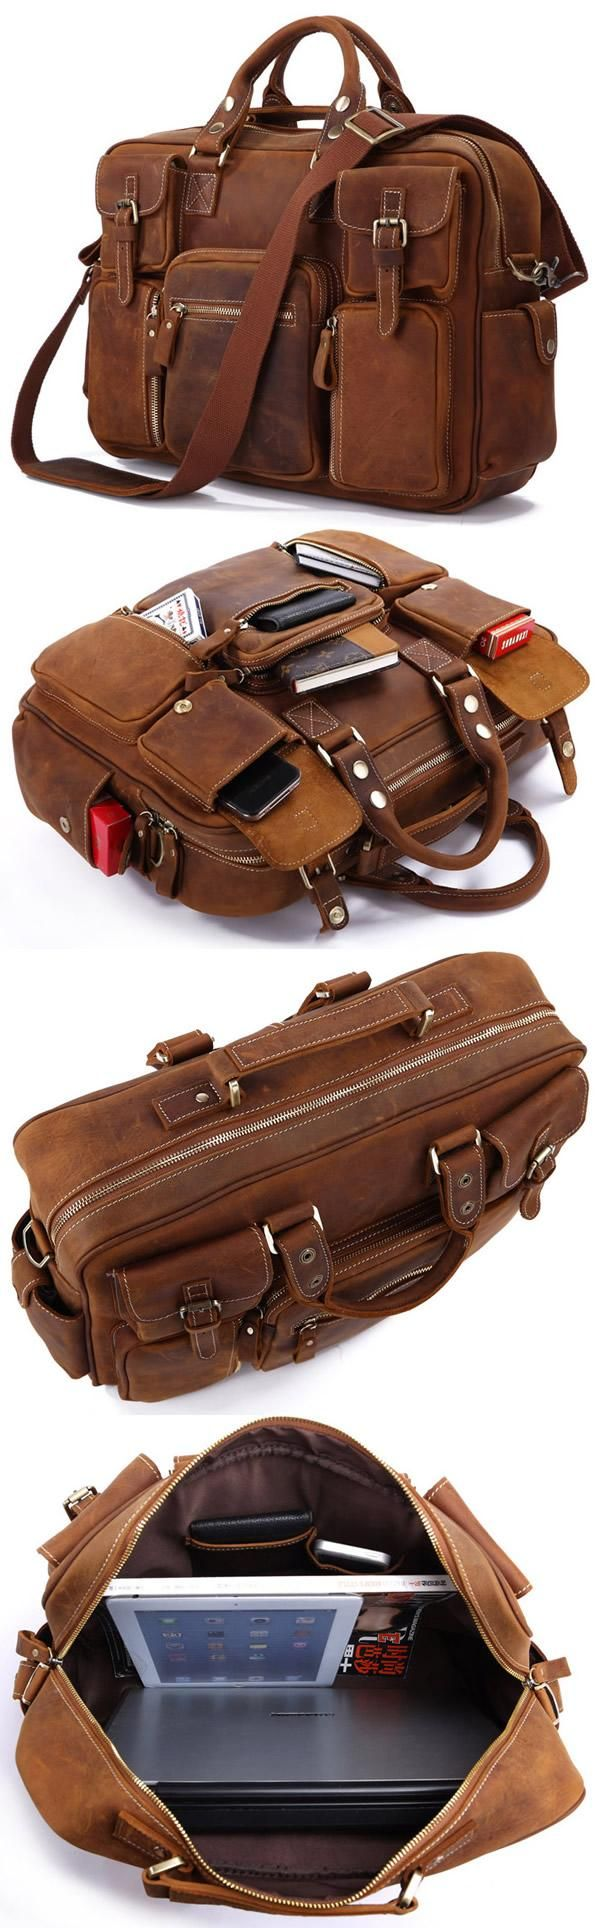 Vintage Leather Travel Bag / Overnight Bag / Duffle Bag / Weekend Bag for Men & Women